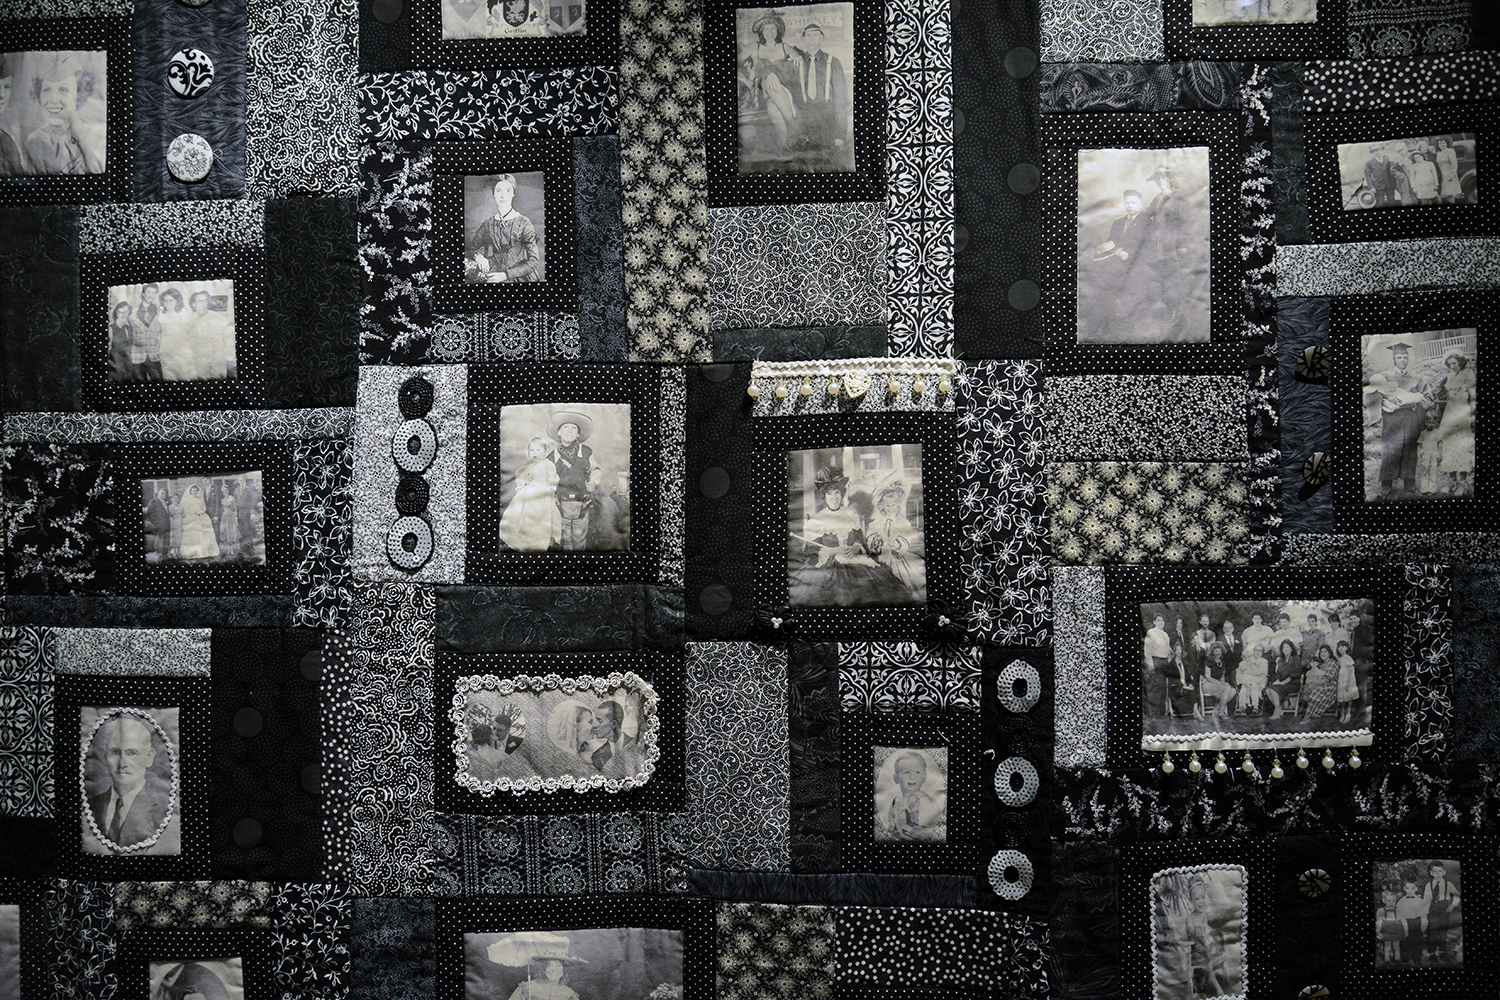 Deborah Griffin-Sierpinski, administrative assistant for the Medieval Studies Program, Classical Studies Department and Archaeology Program, is presenting a scrapbook photo quilt. She also teaches a quilting class through Middletown Adult Education.